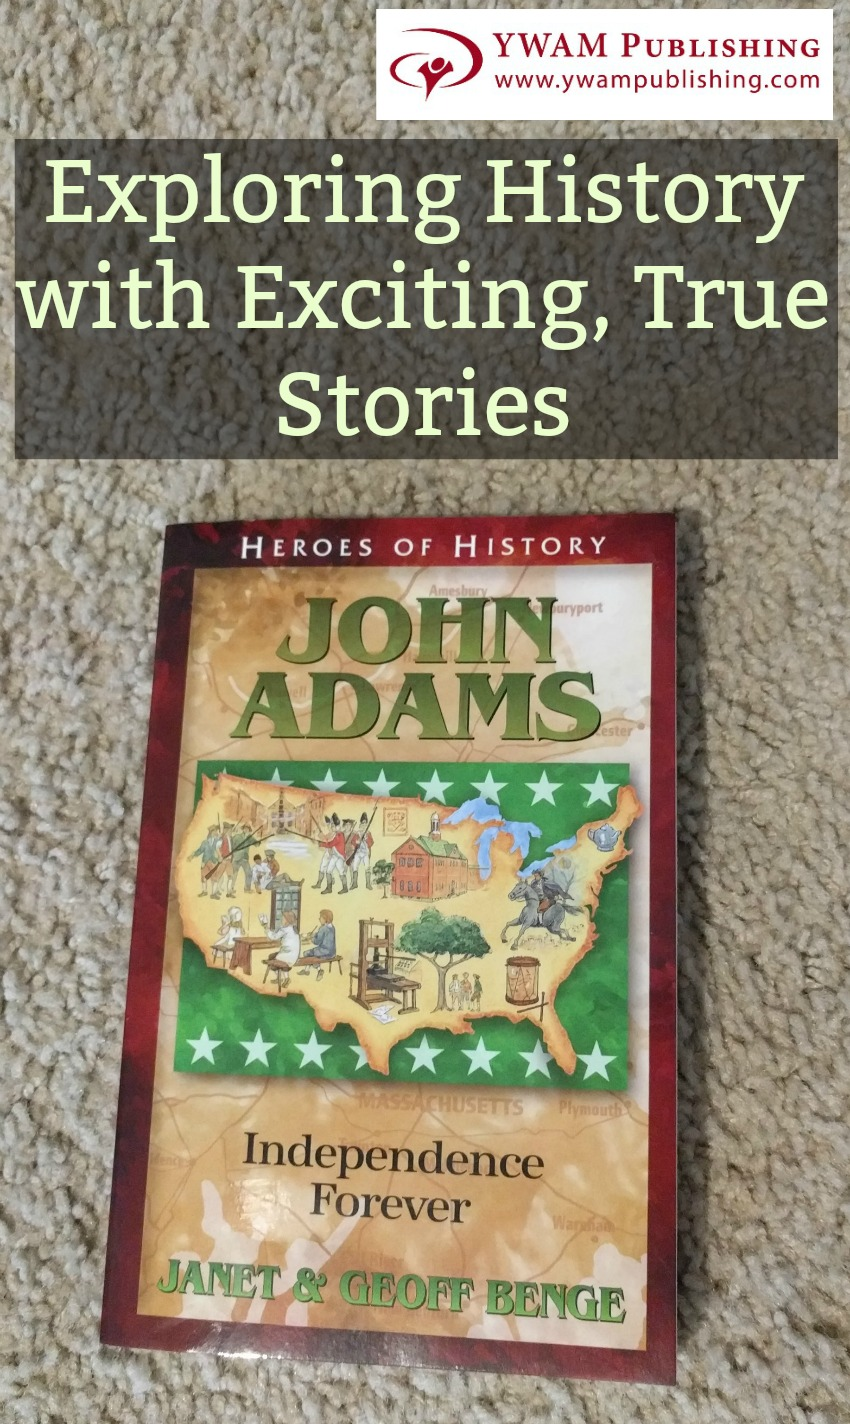 YWAM Publishing Heroes of History- John Adams Review